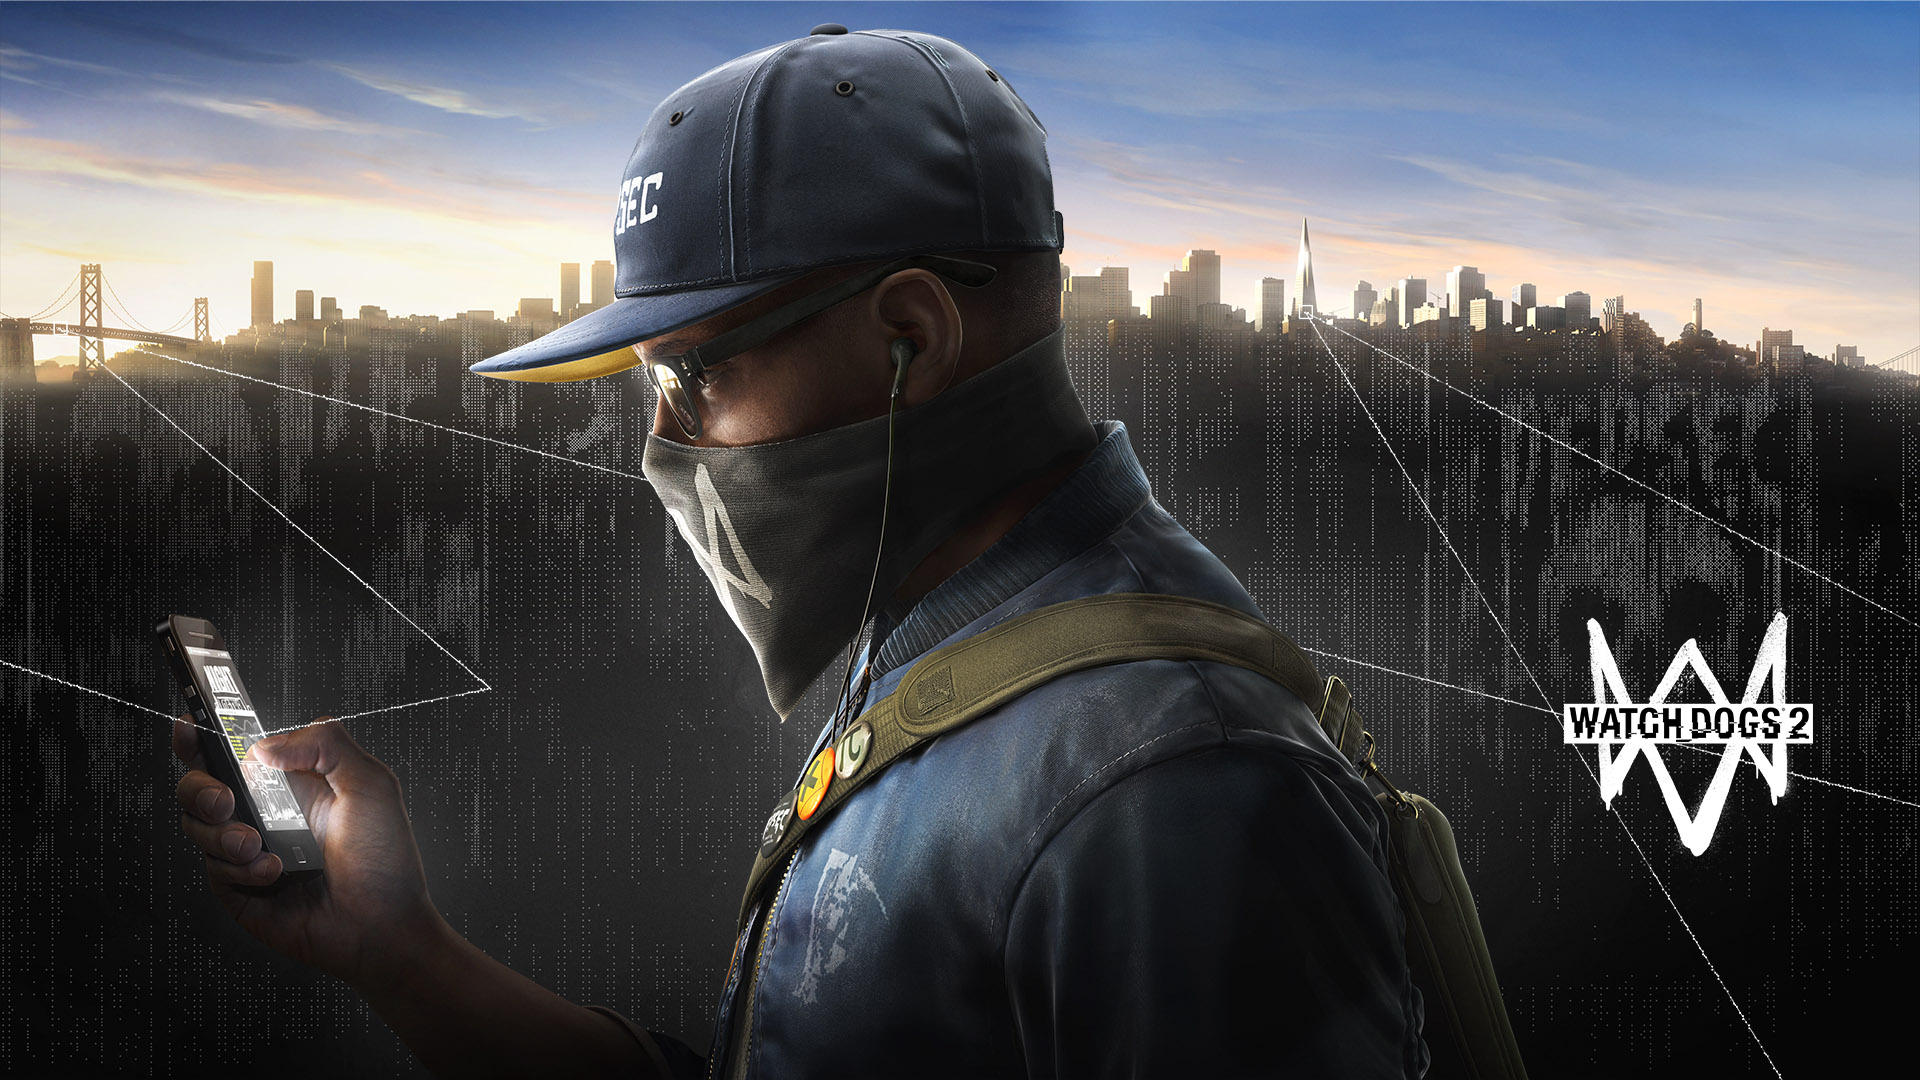 How to fix 0xc000007b in Watch Dogs 2?